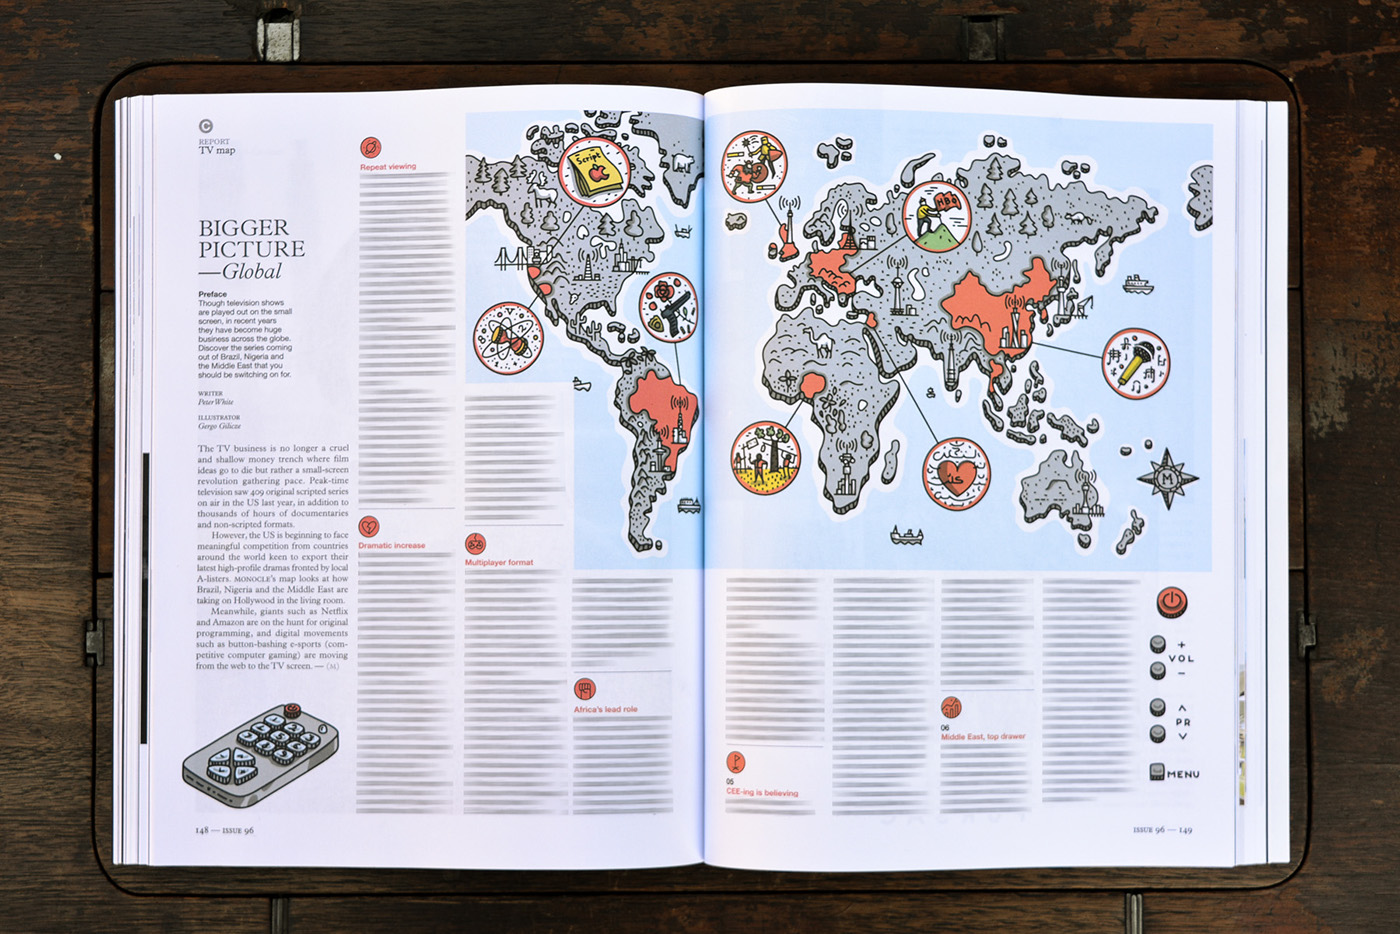 World map infographic monocle magazine on behance the final world map with highlited areas in red which are mentioned in the article gumiabroncs Image collections